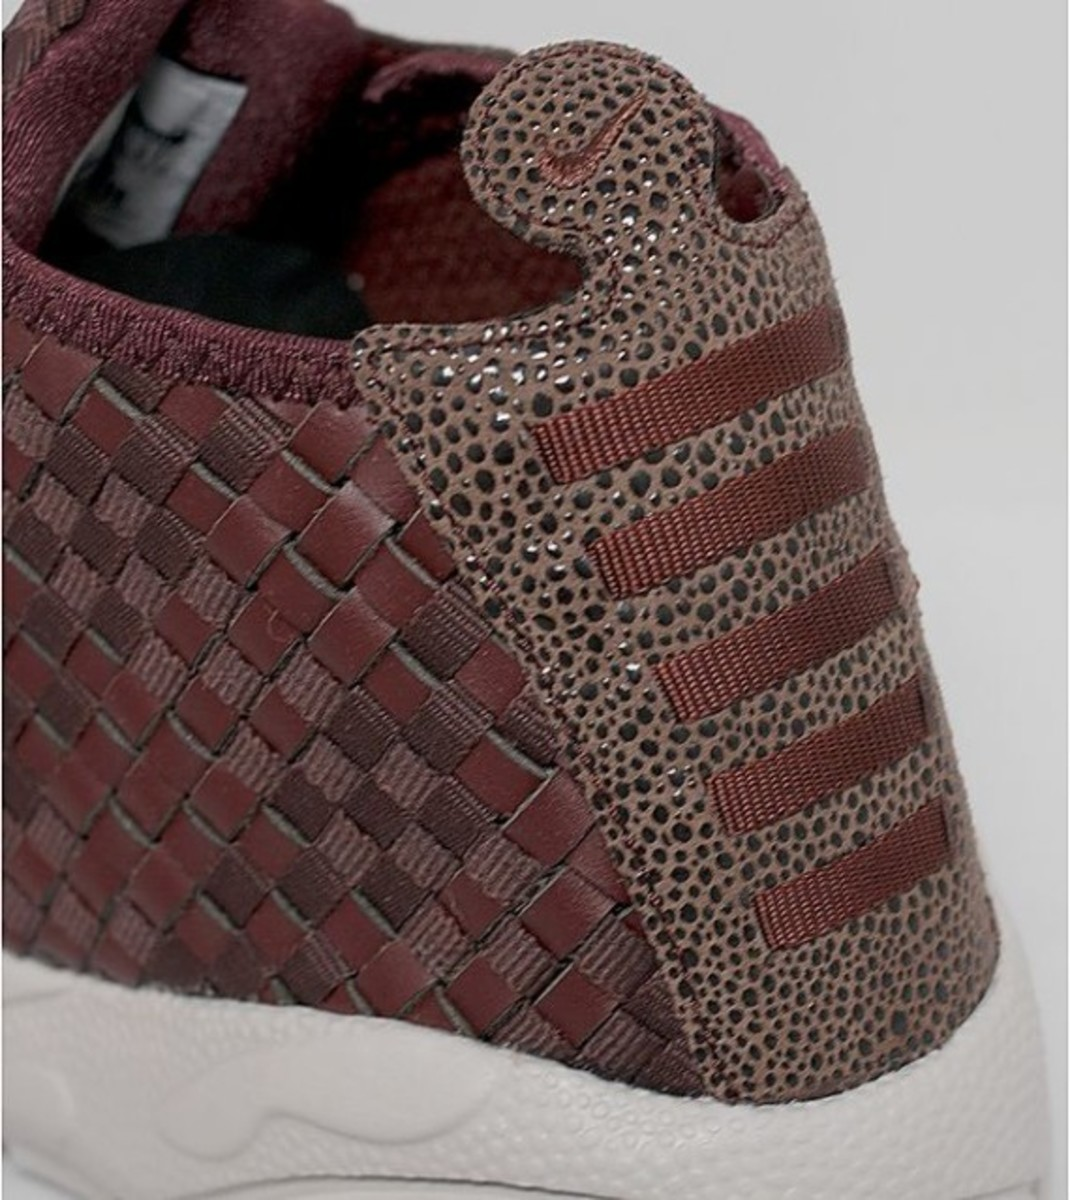 nike-air-footscape-woven-desert-chukka-brown-leather-05